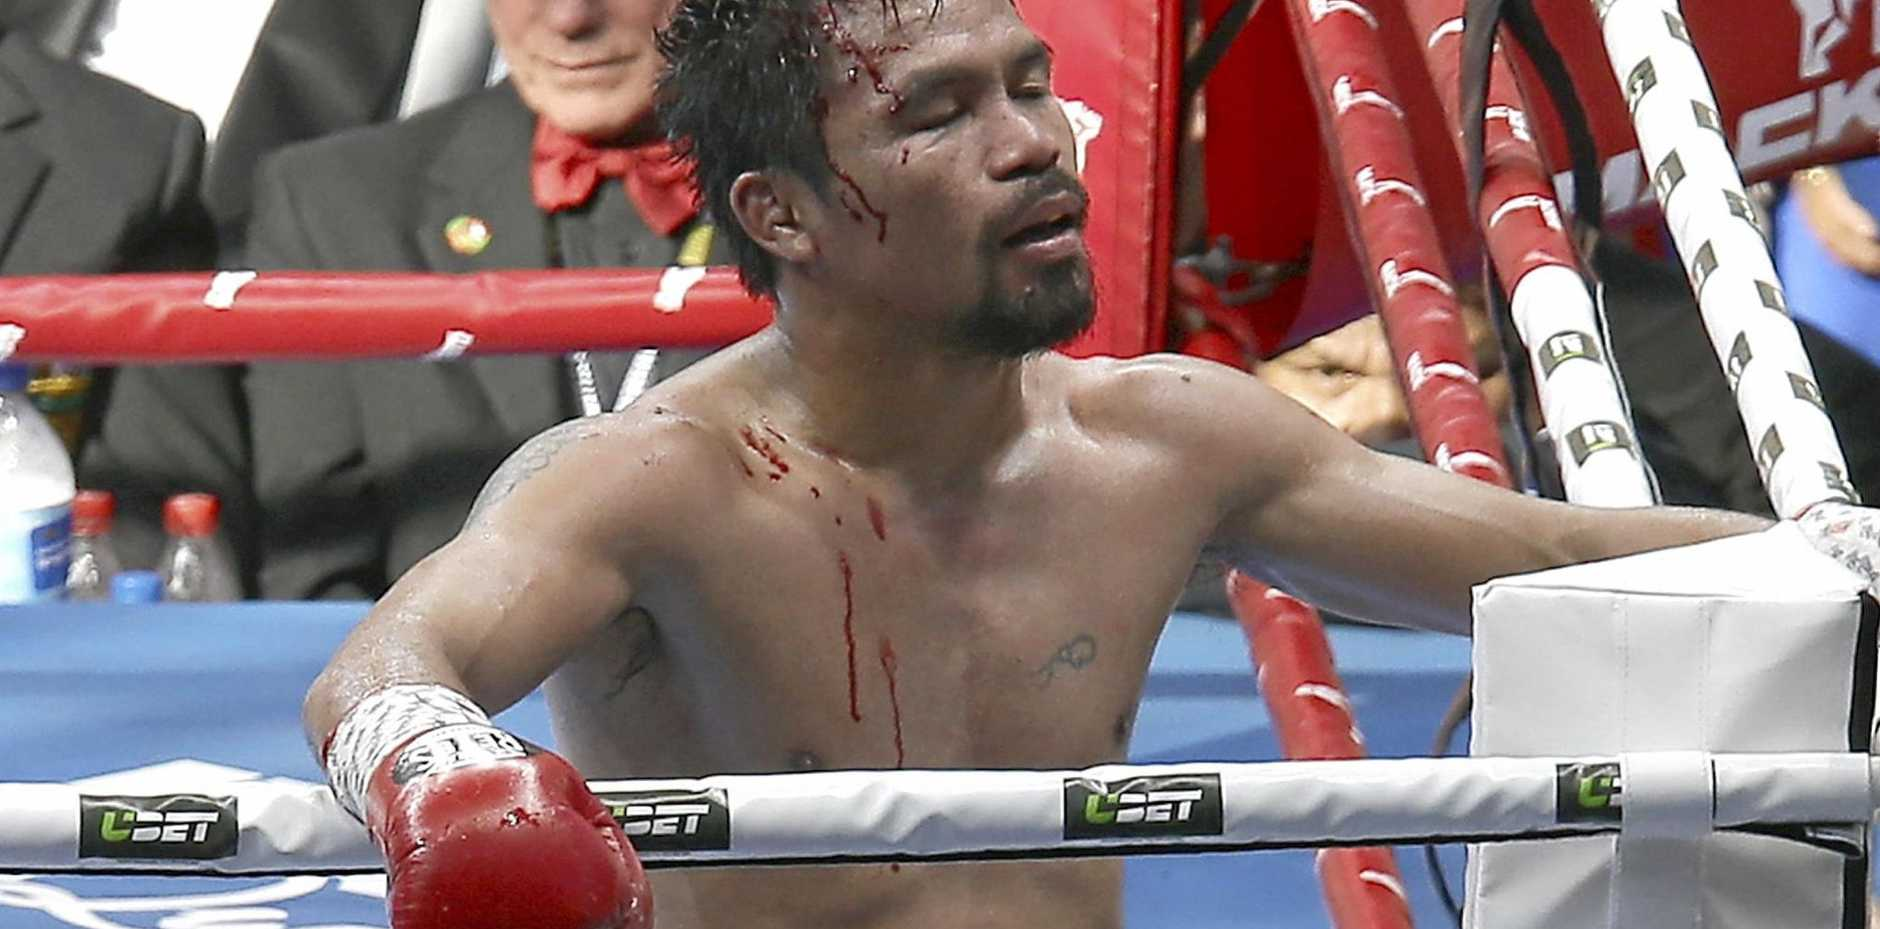 Manny Pacquiao reacts after going down to Jeff Horn in their WBO welterweight title fight.